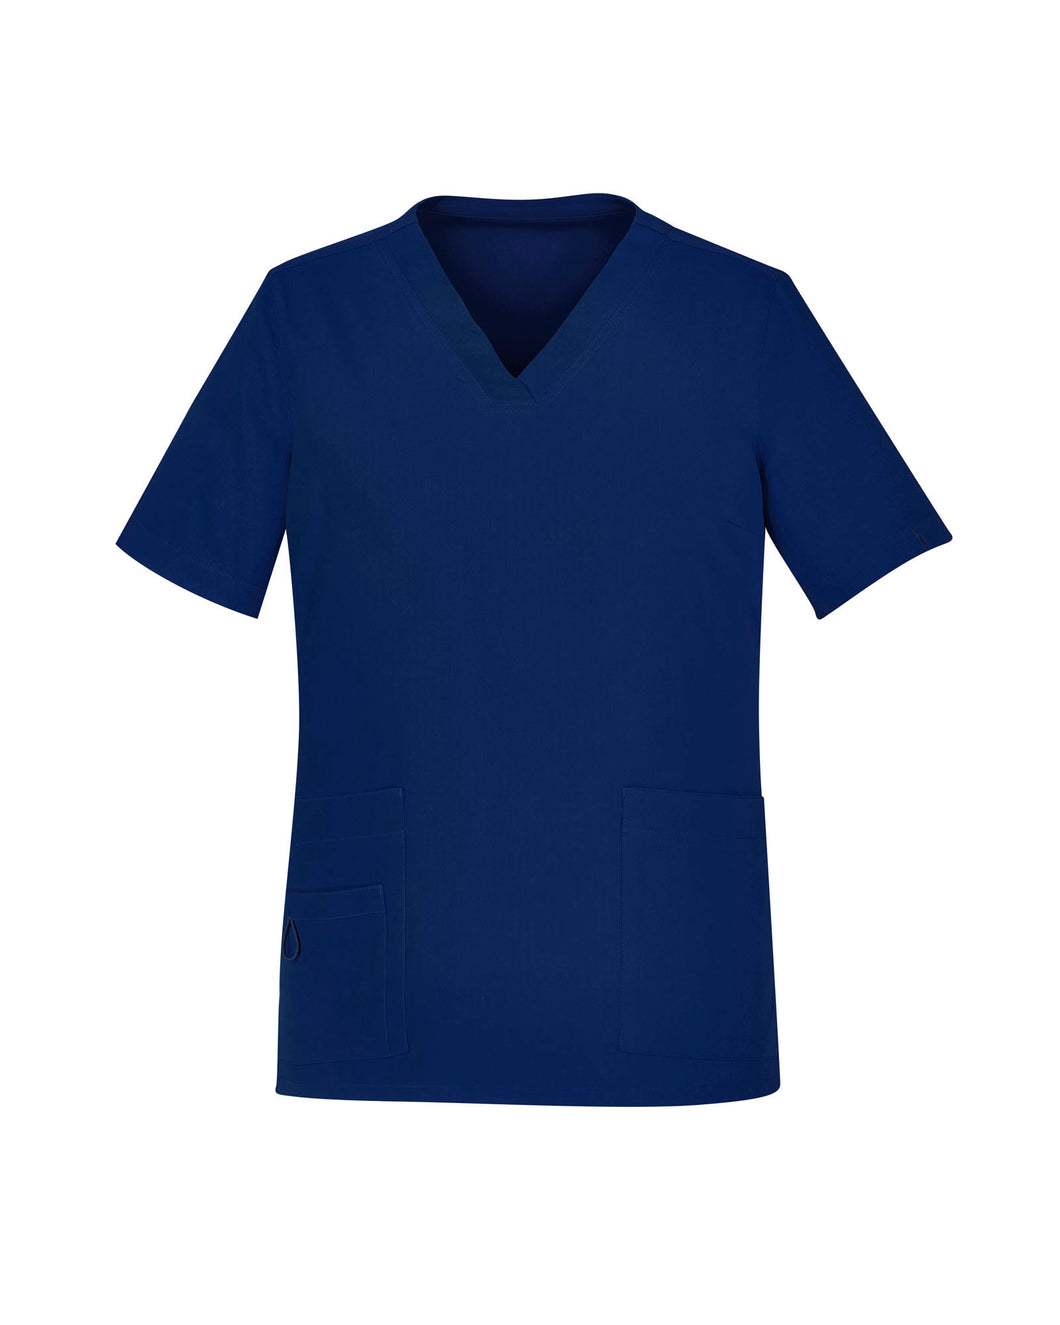 Women's Easy Fit V-Neck Navy Scrubs Top